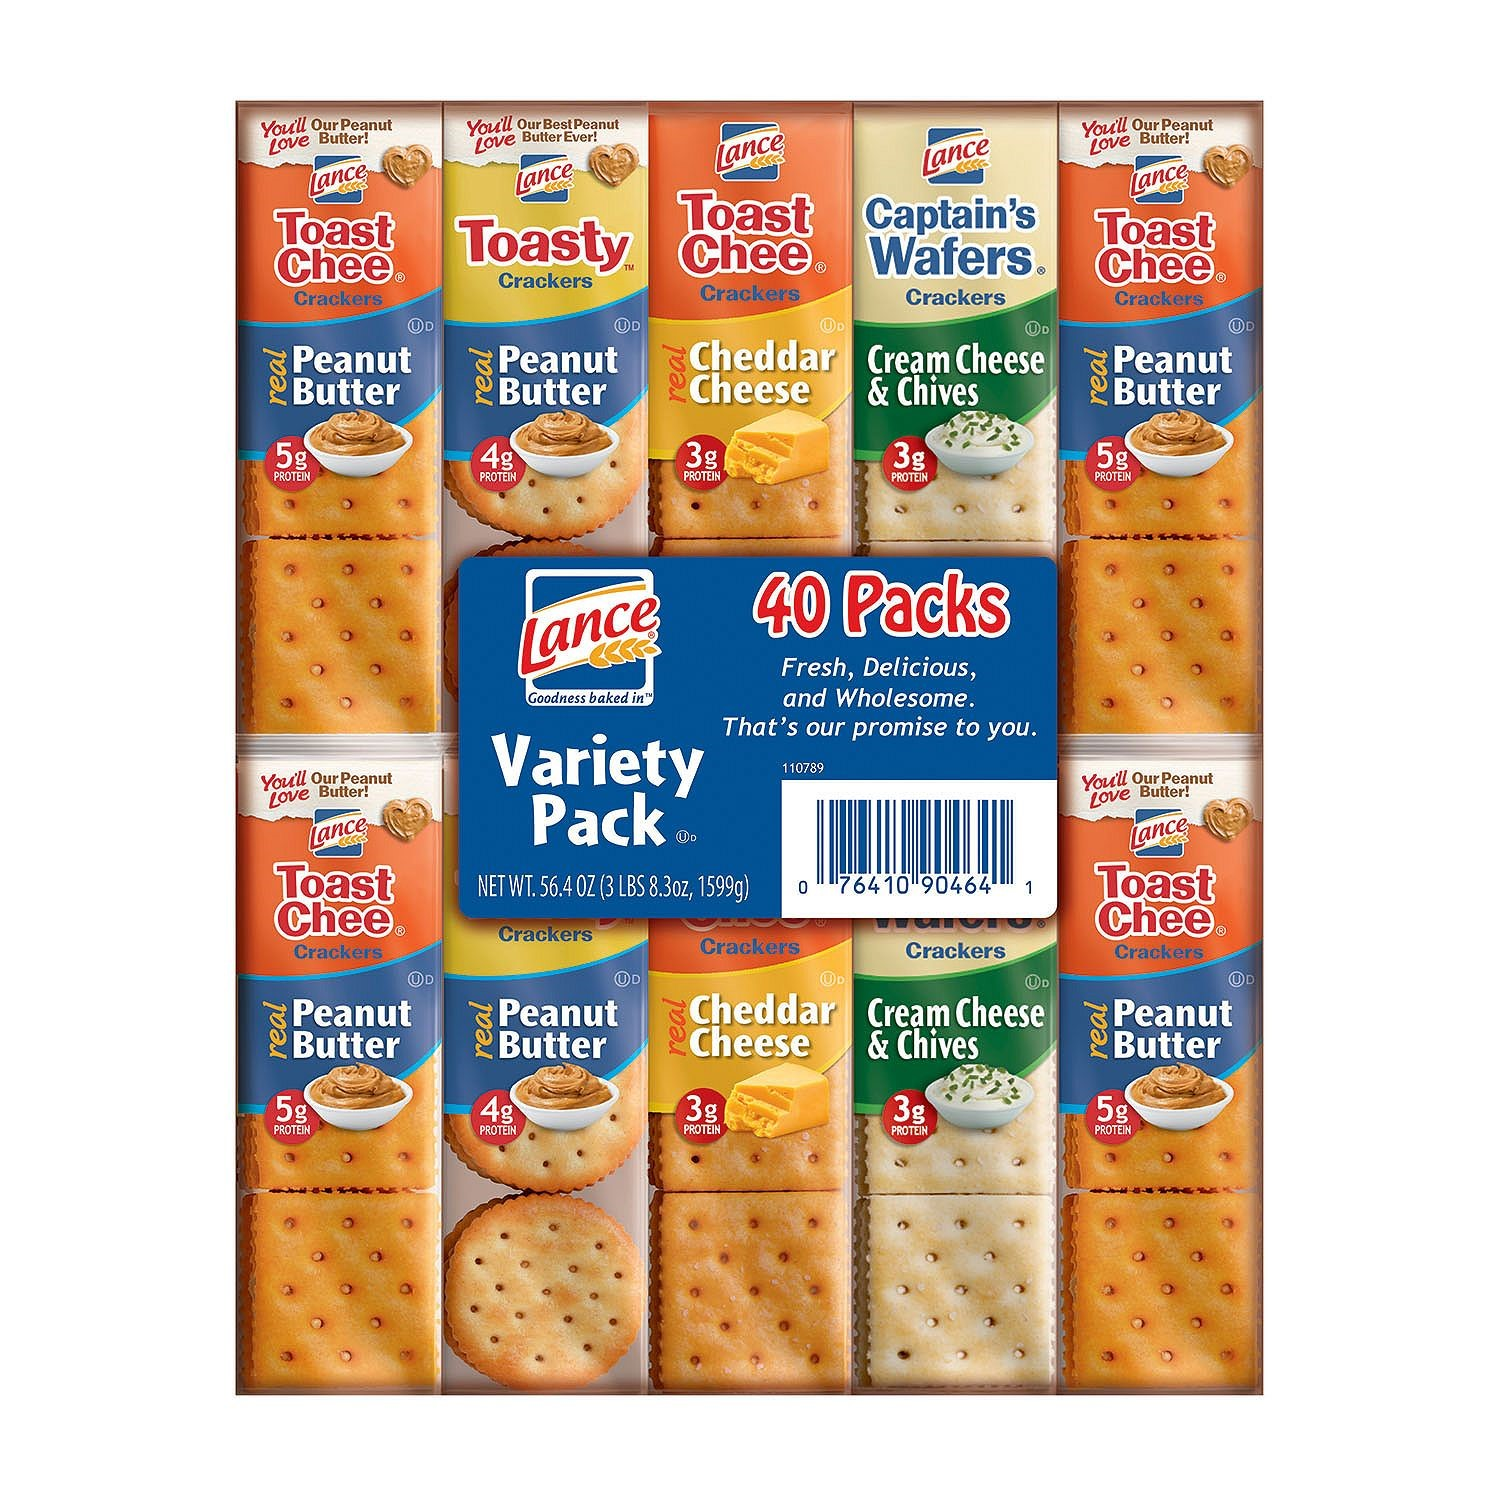 Lance Sandwich Cracker Variety Pack, 40 Ct